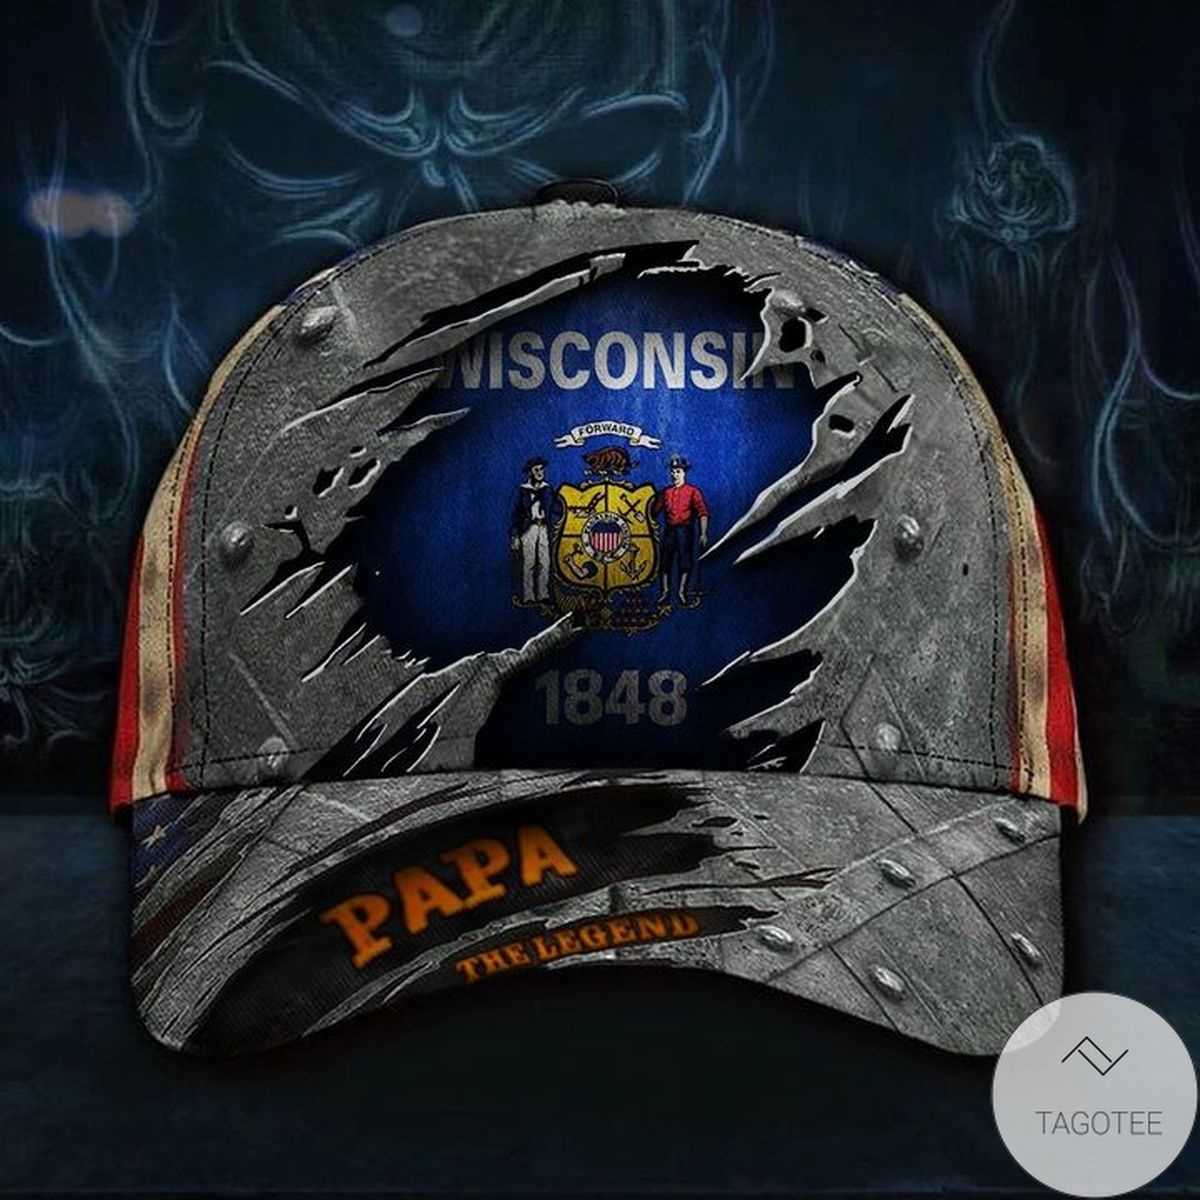 Wisconsin Papa The Legend 3D Hat Vintage USA Flag Cap Dad Day Gift Father's Day Ideas